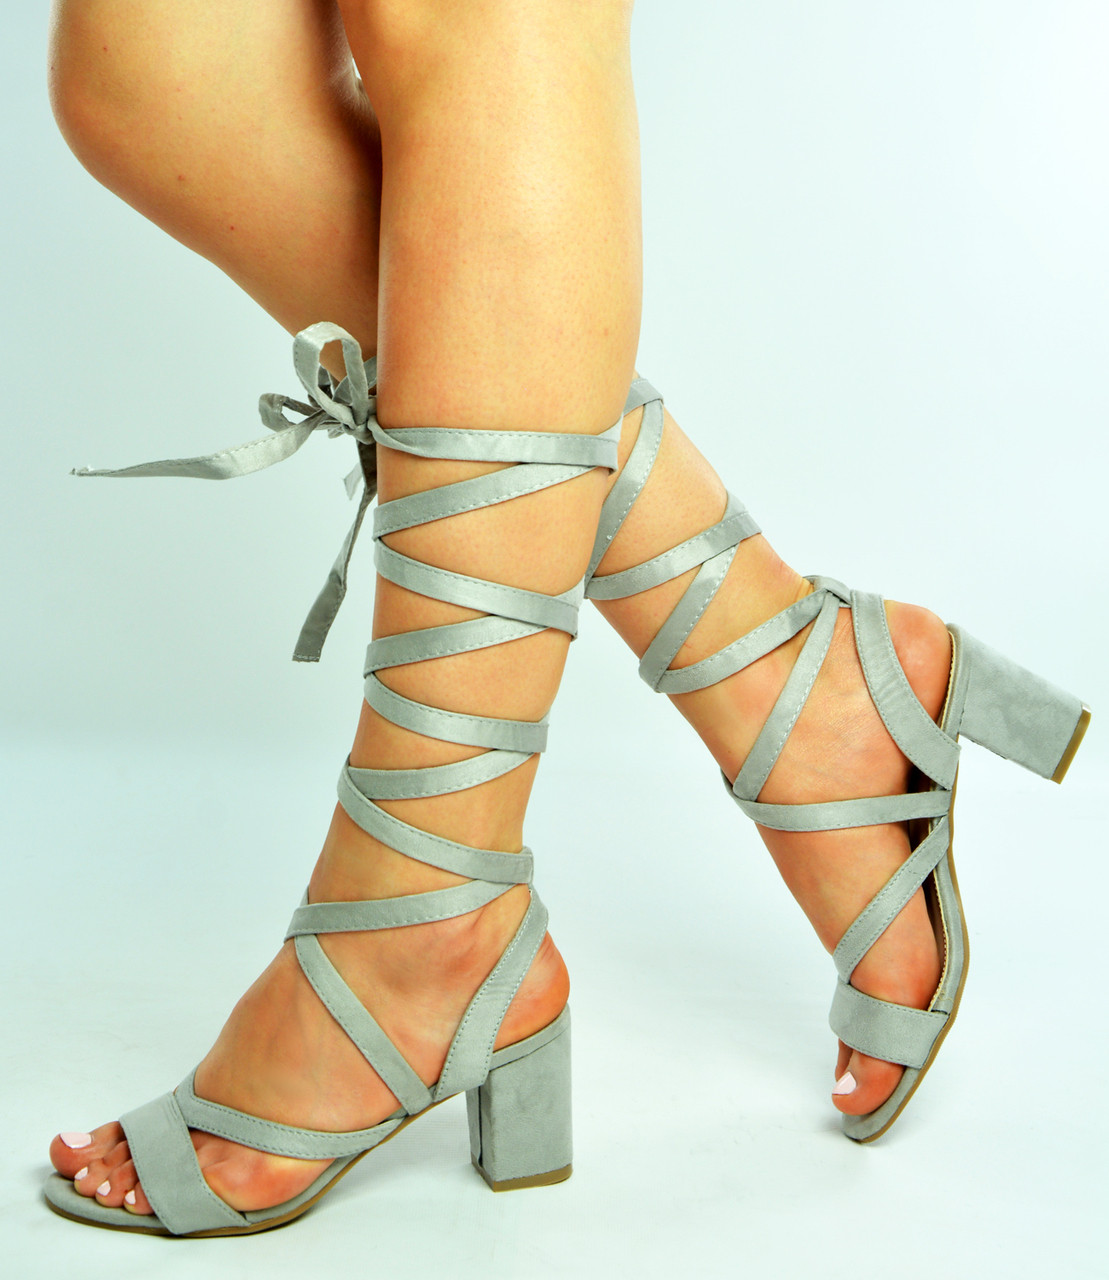 f6a4e5d1447 New Womens Ladies Grey Ankle Tie Lace Up Block Heels Sandal Shoes Size Uk  3-8